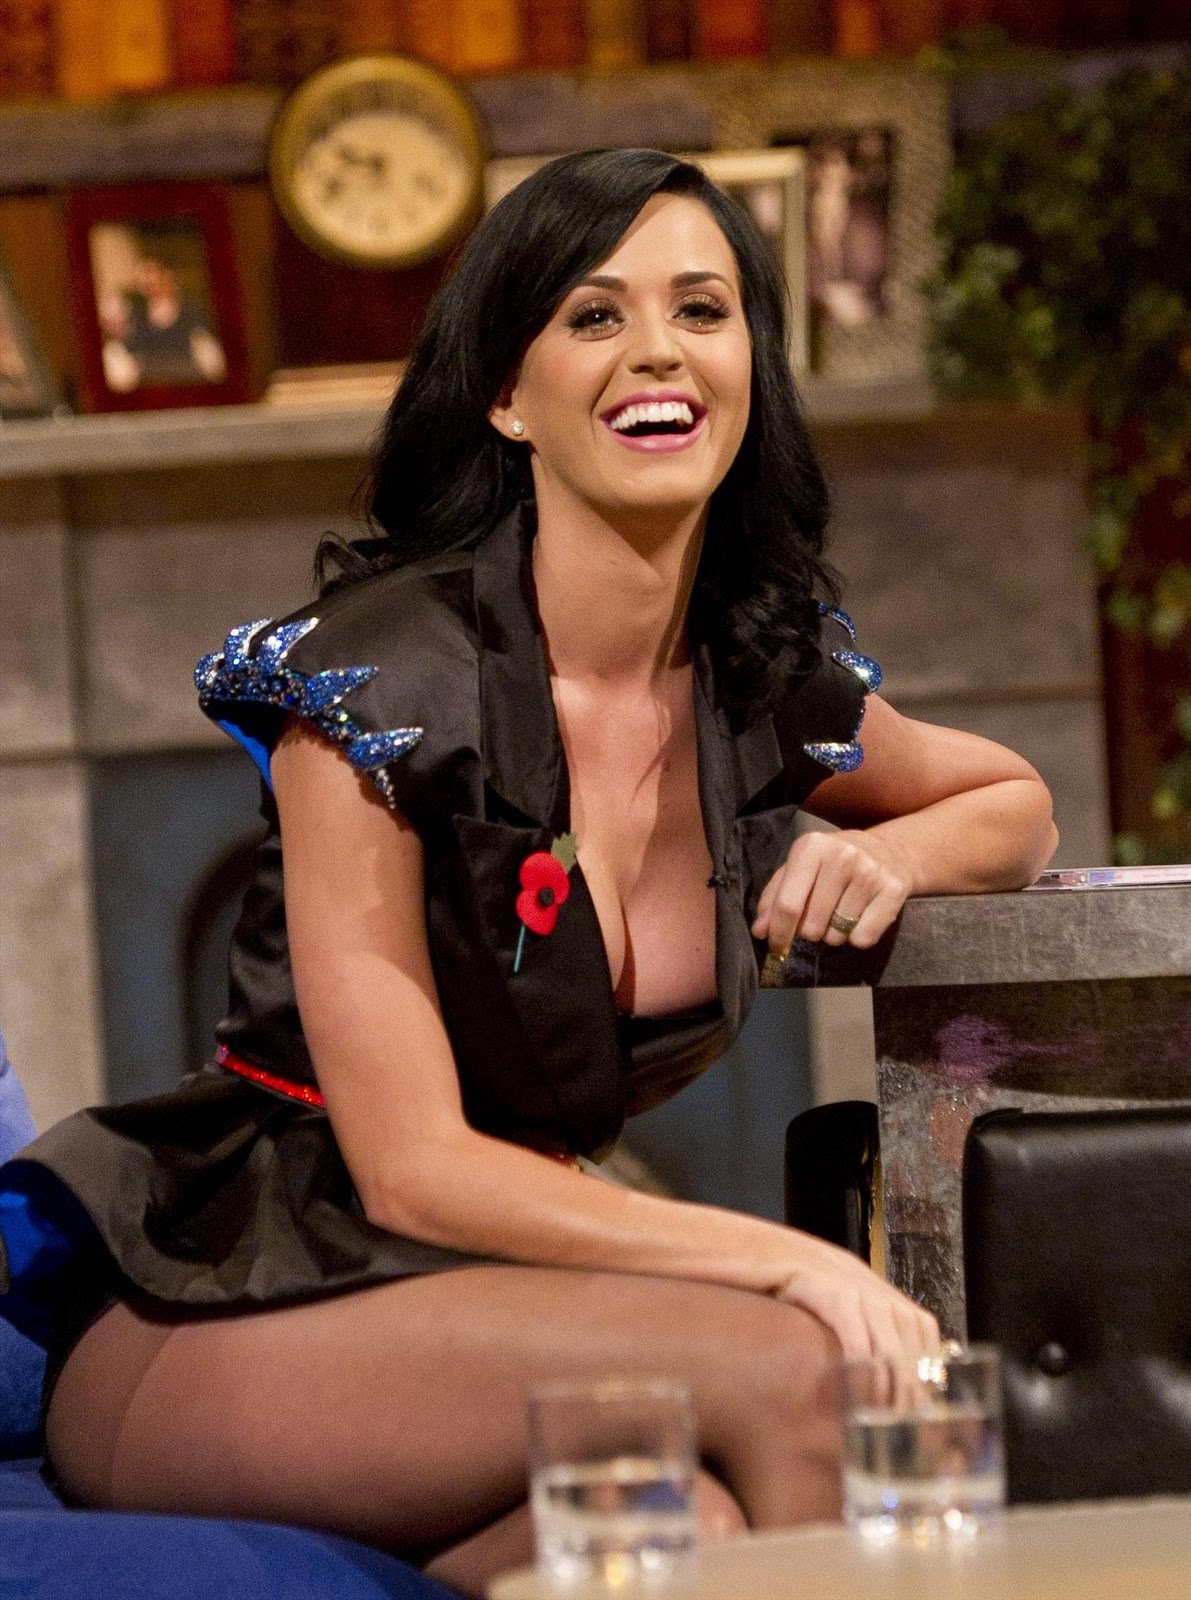 Glamour Actress Life Katy Perry Sexiest Exposure Ever -5996